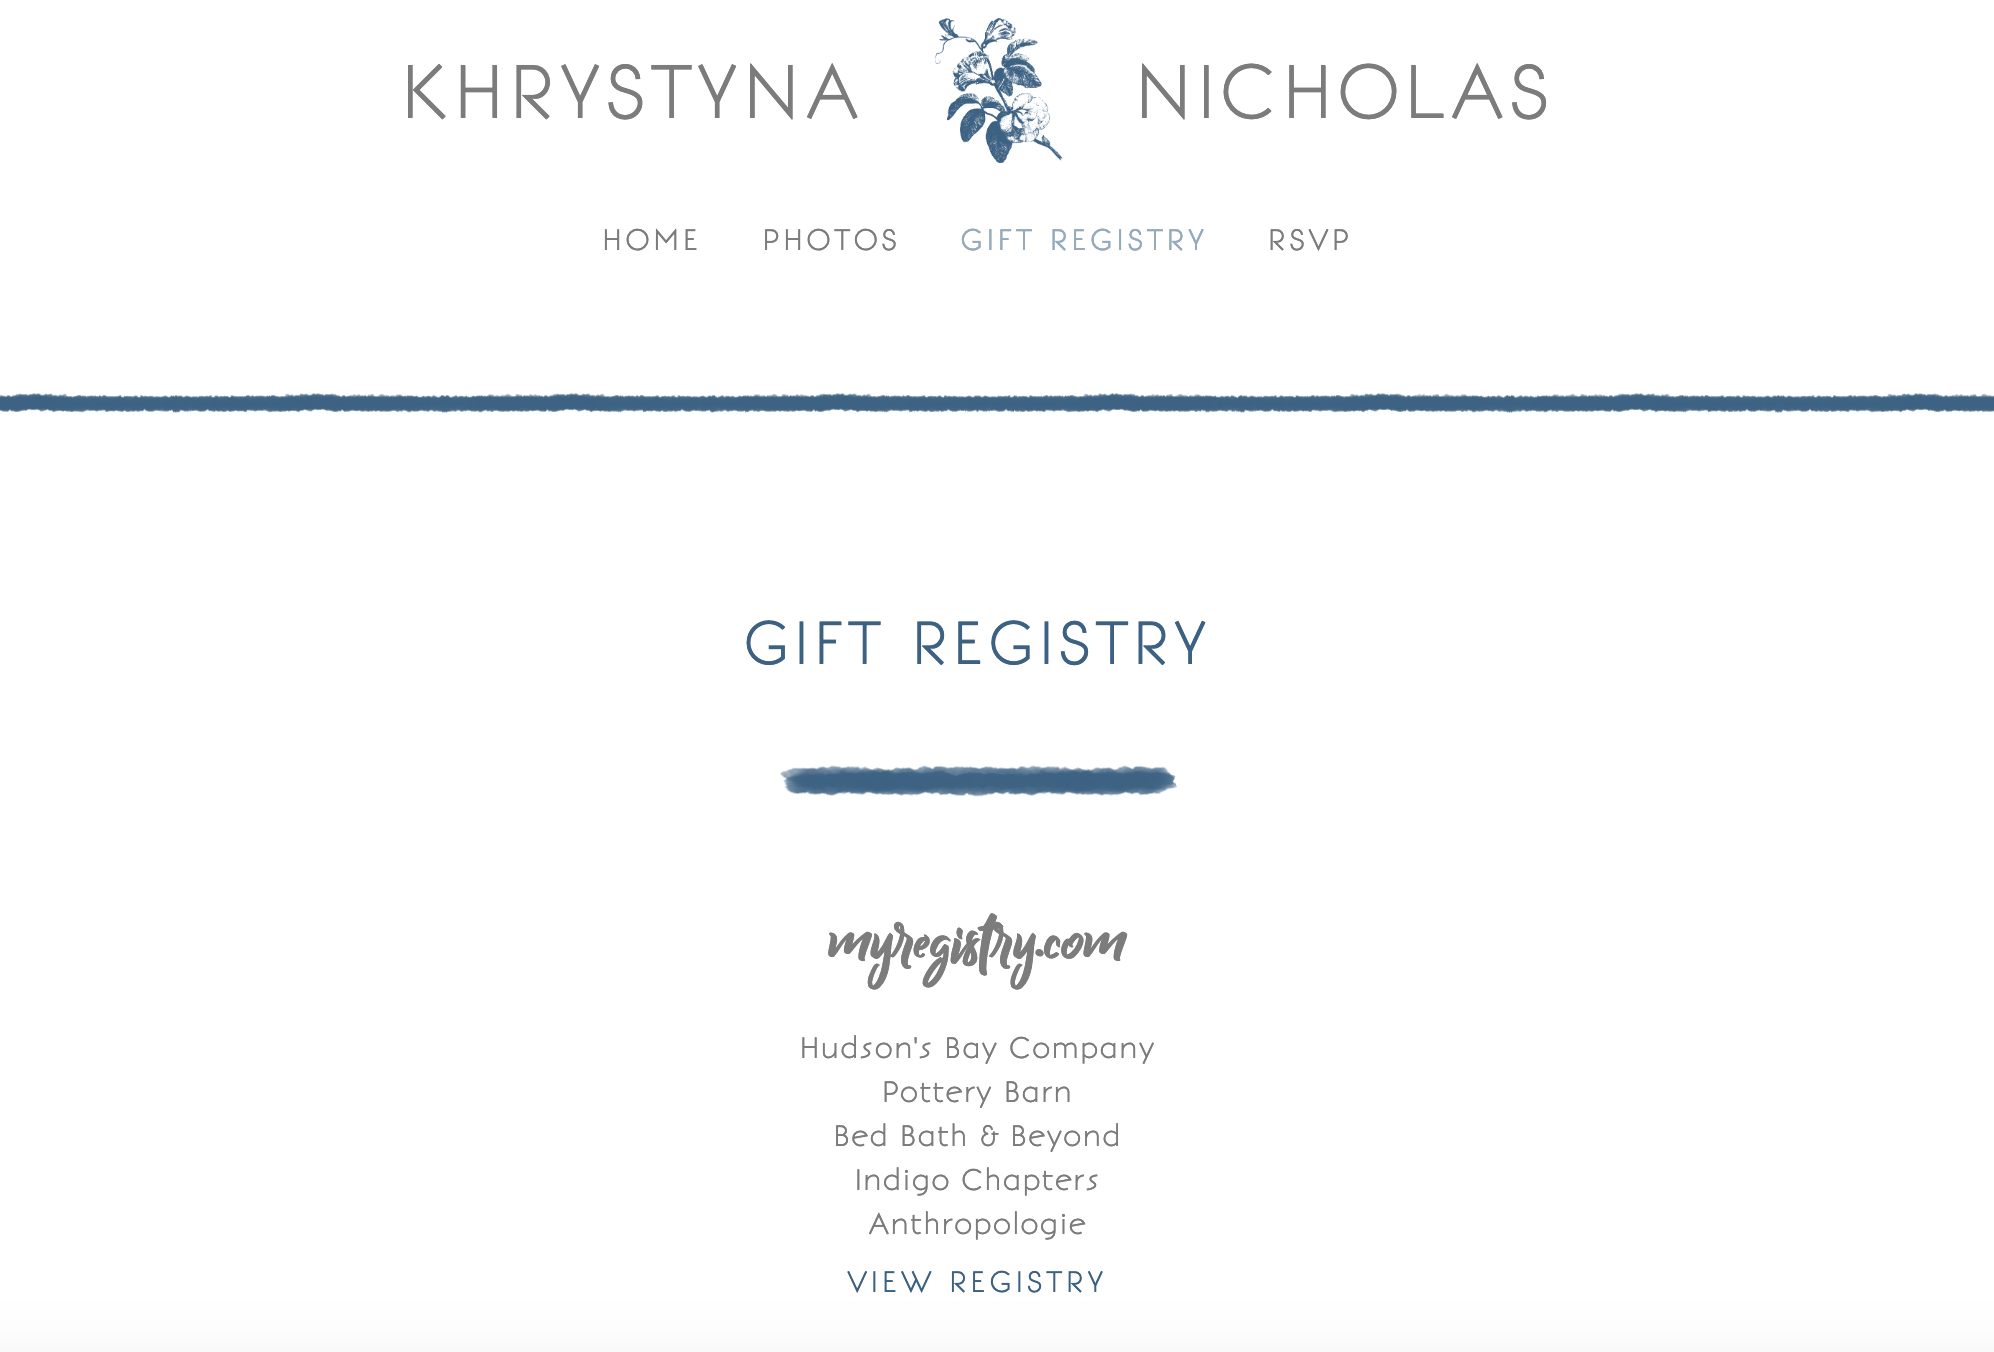 How the registry link appeared on our website before the engagement party!